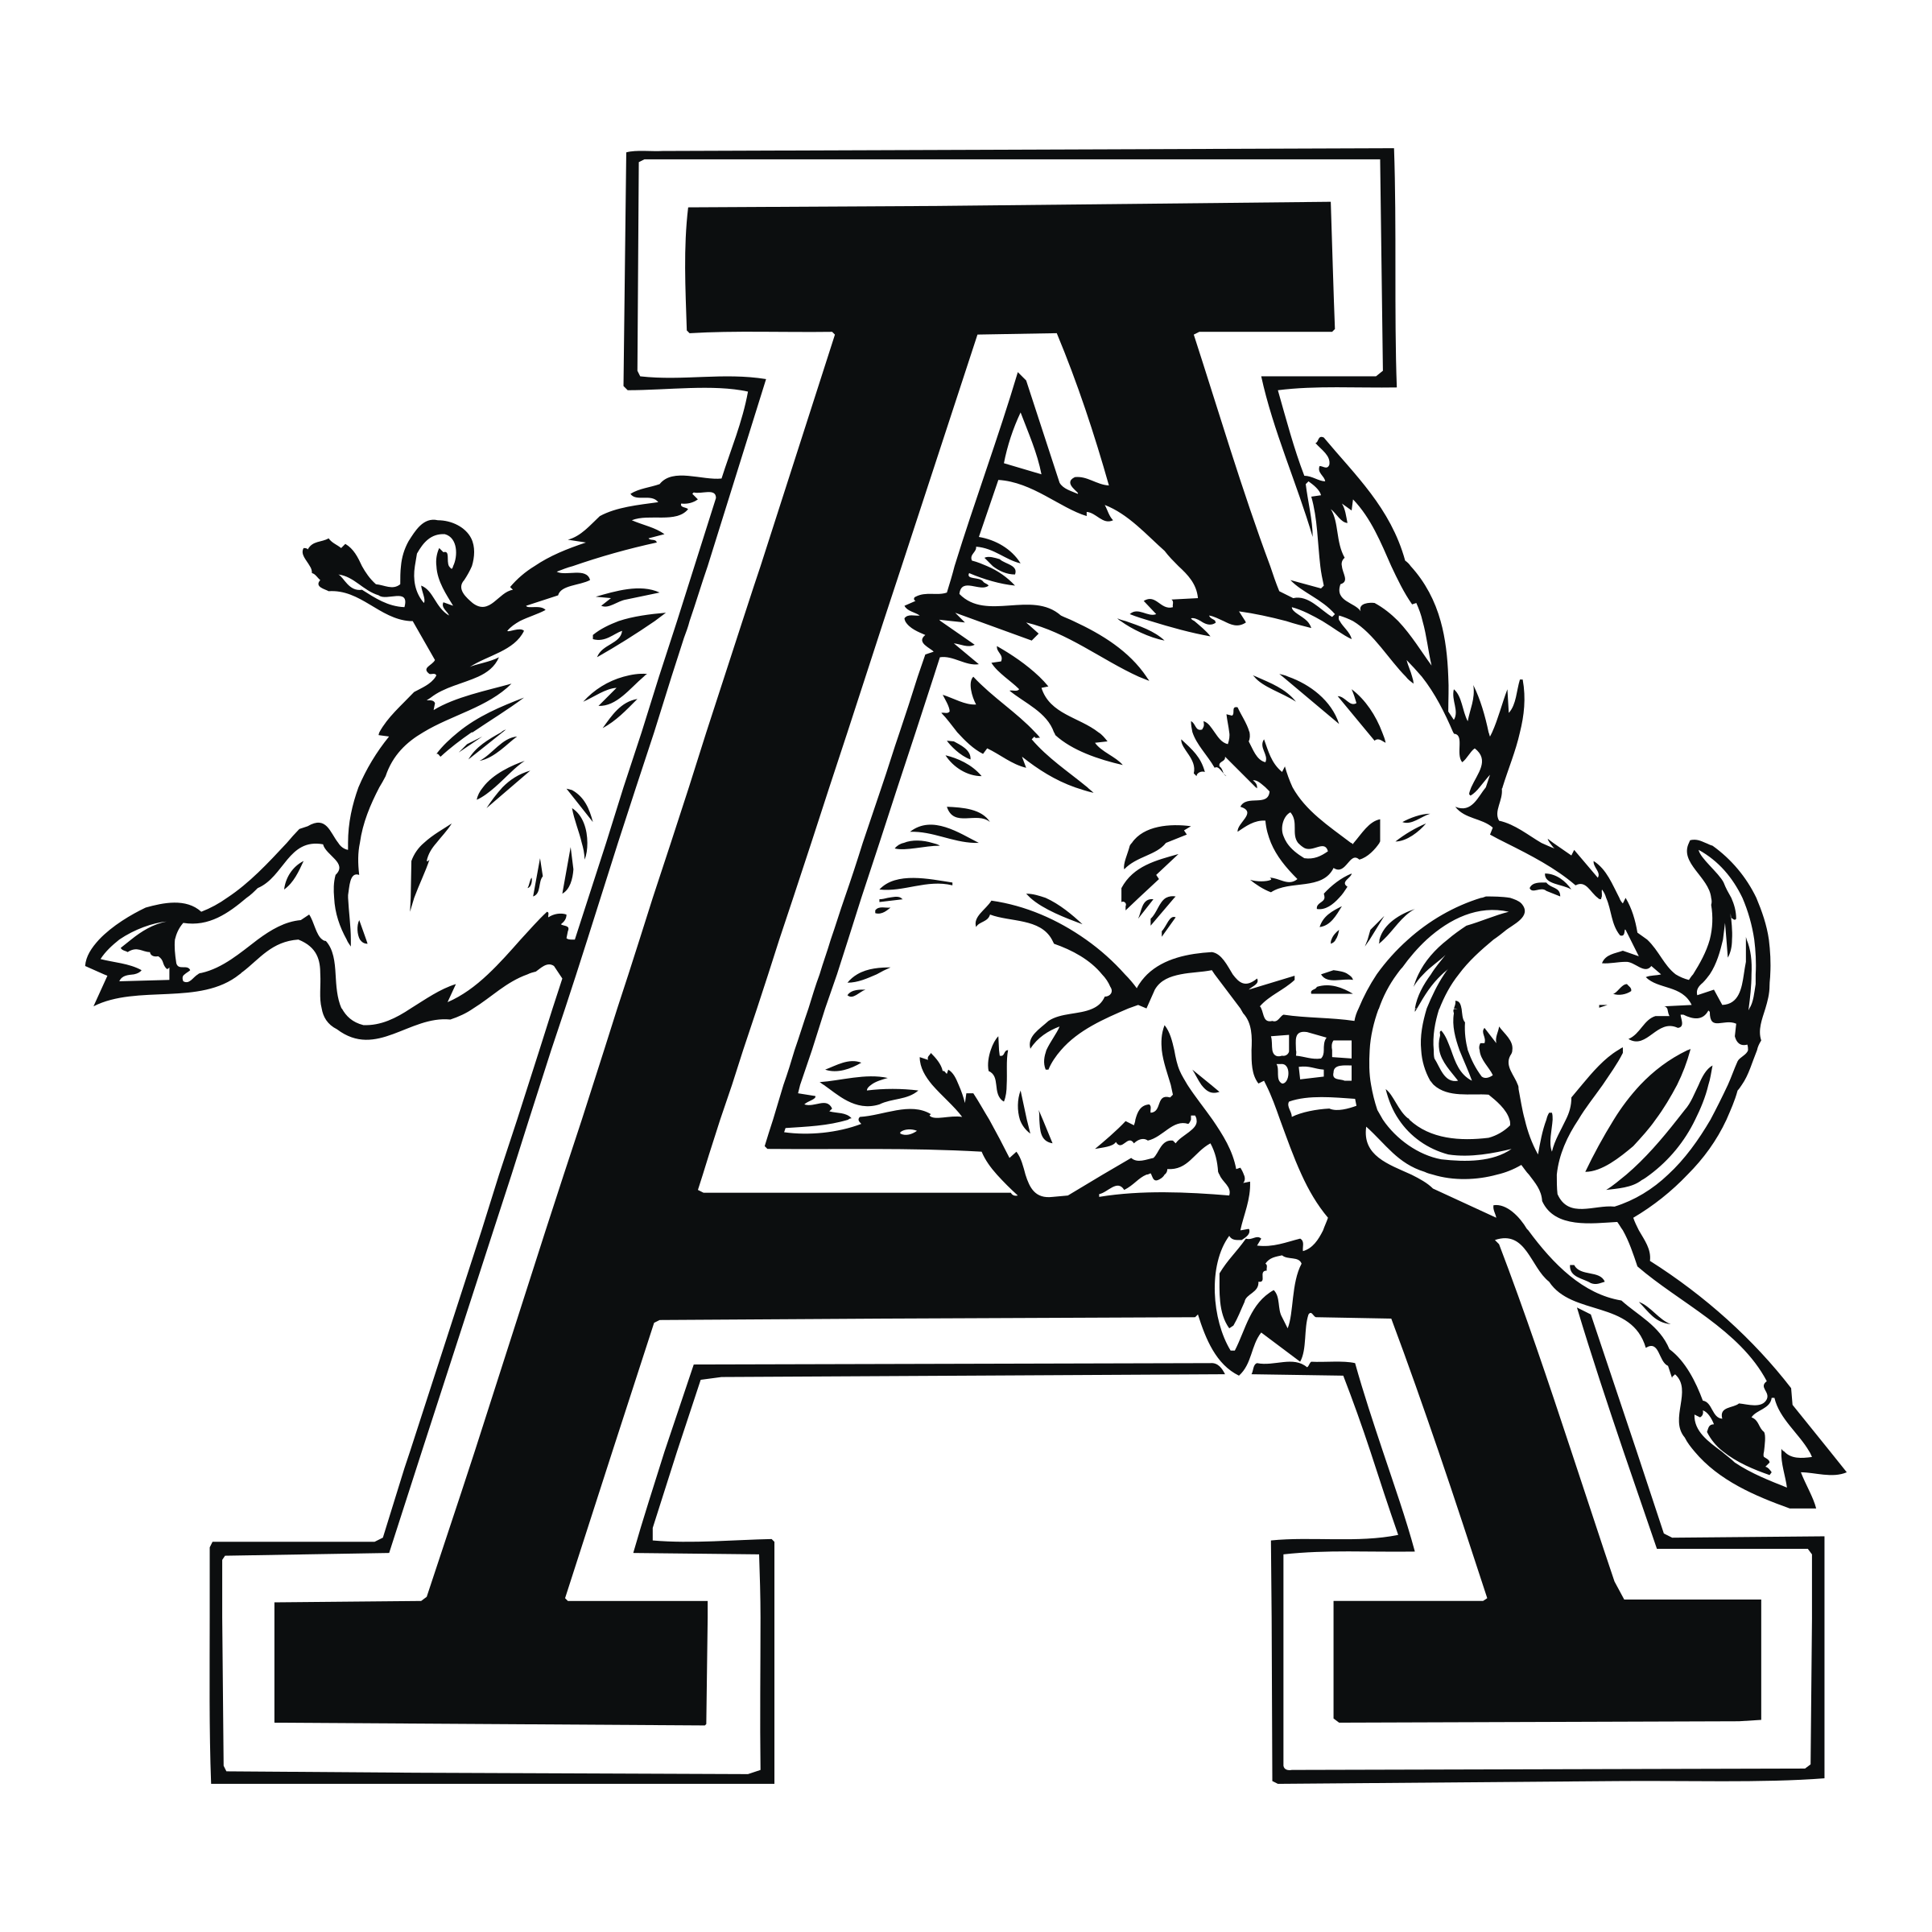 Arkansas Outline Vector